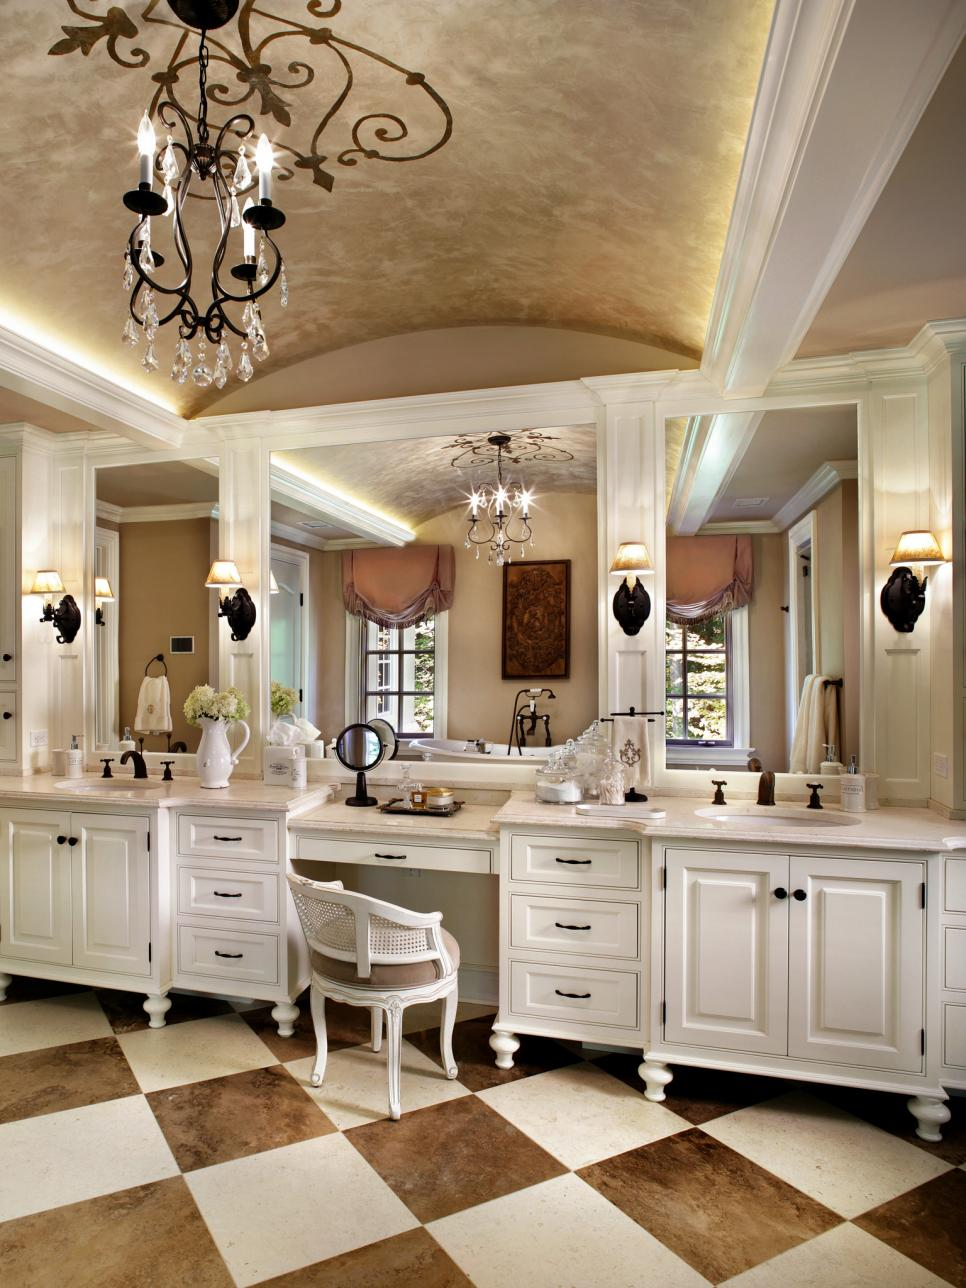 White Bathroom With Dual Vanity and Arched Ceiling With Chandelier